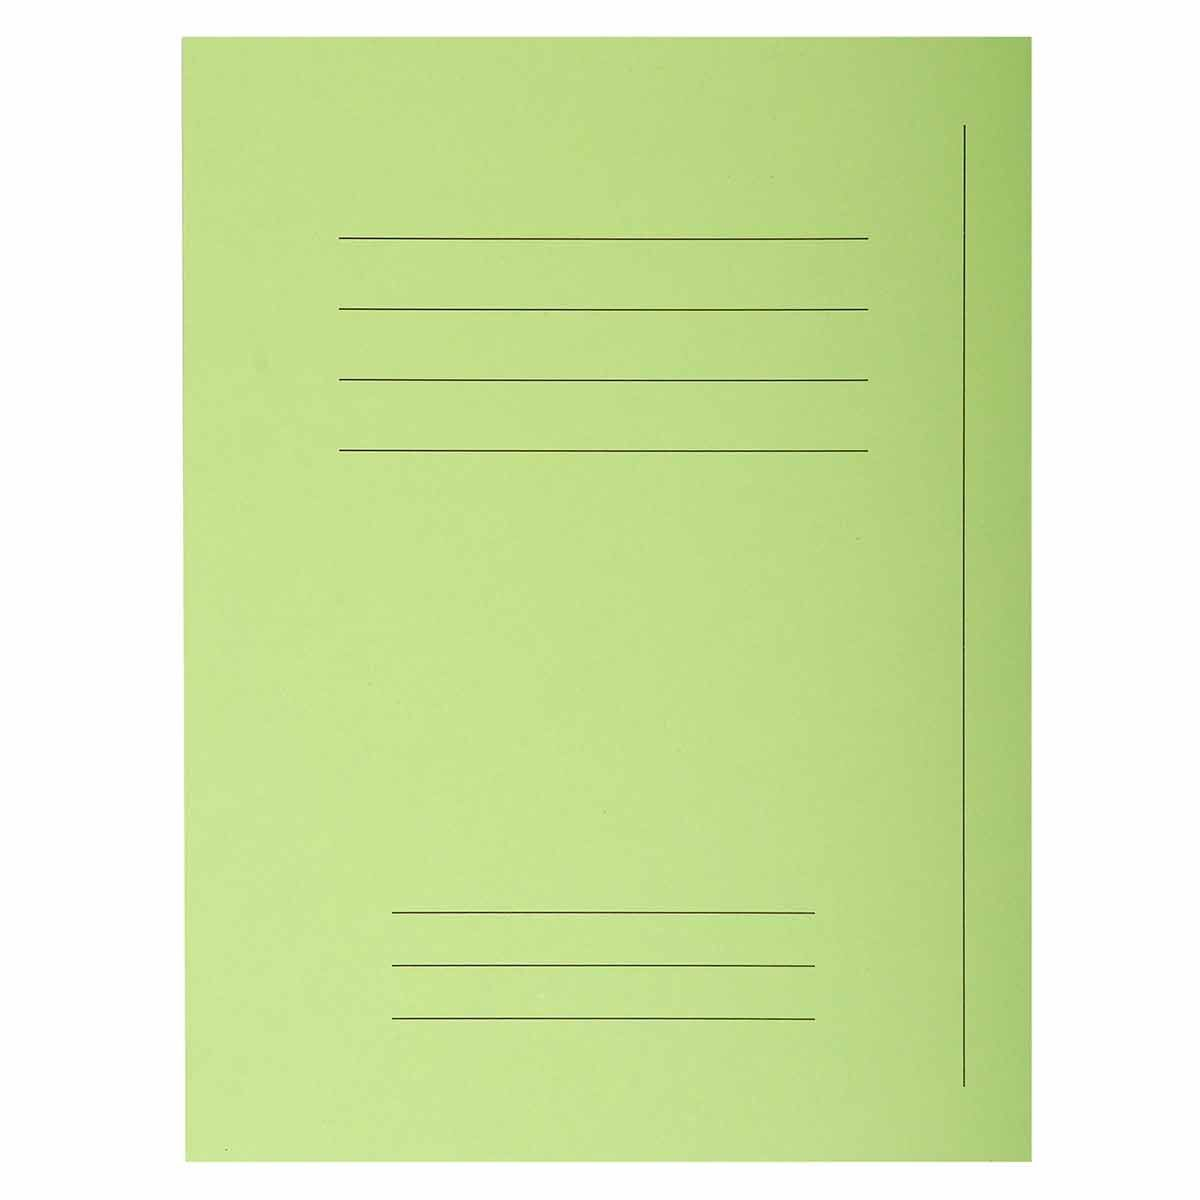 Exacompta Forever Square Cut Folders Printed Pack of 250 Bright Green